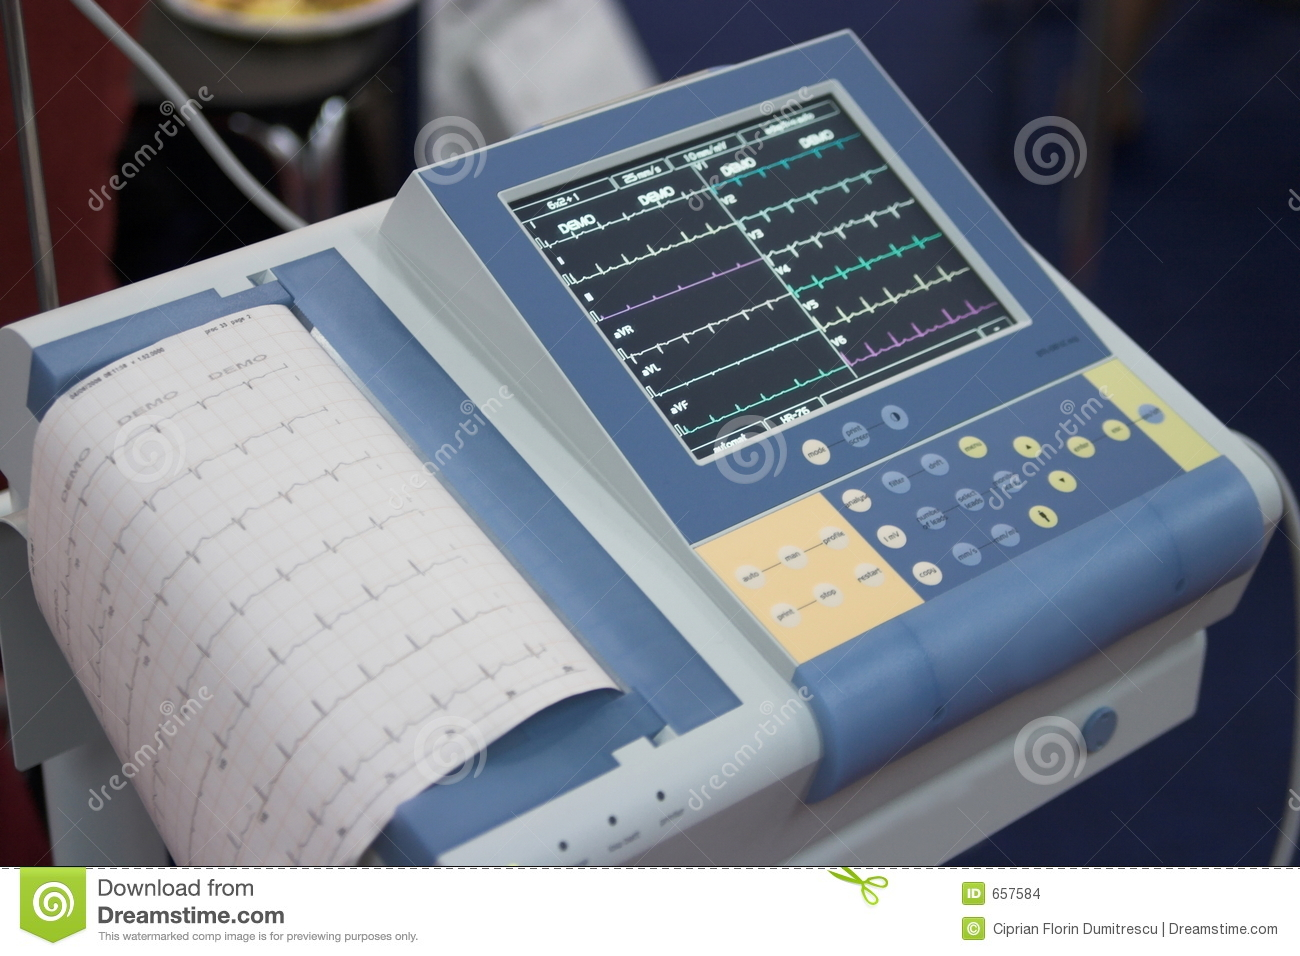 Cardiovascular Monitoring System : Hearth monitoring system stock images image